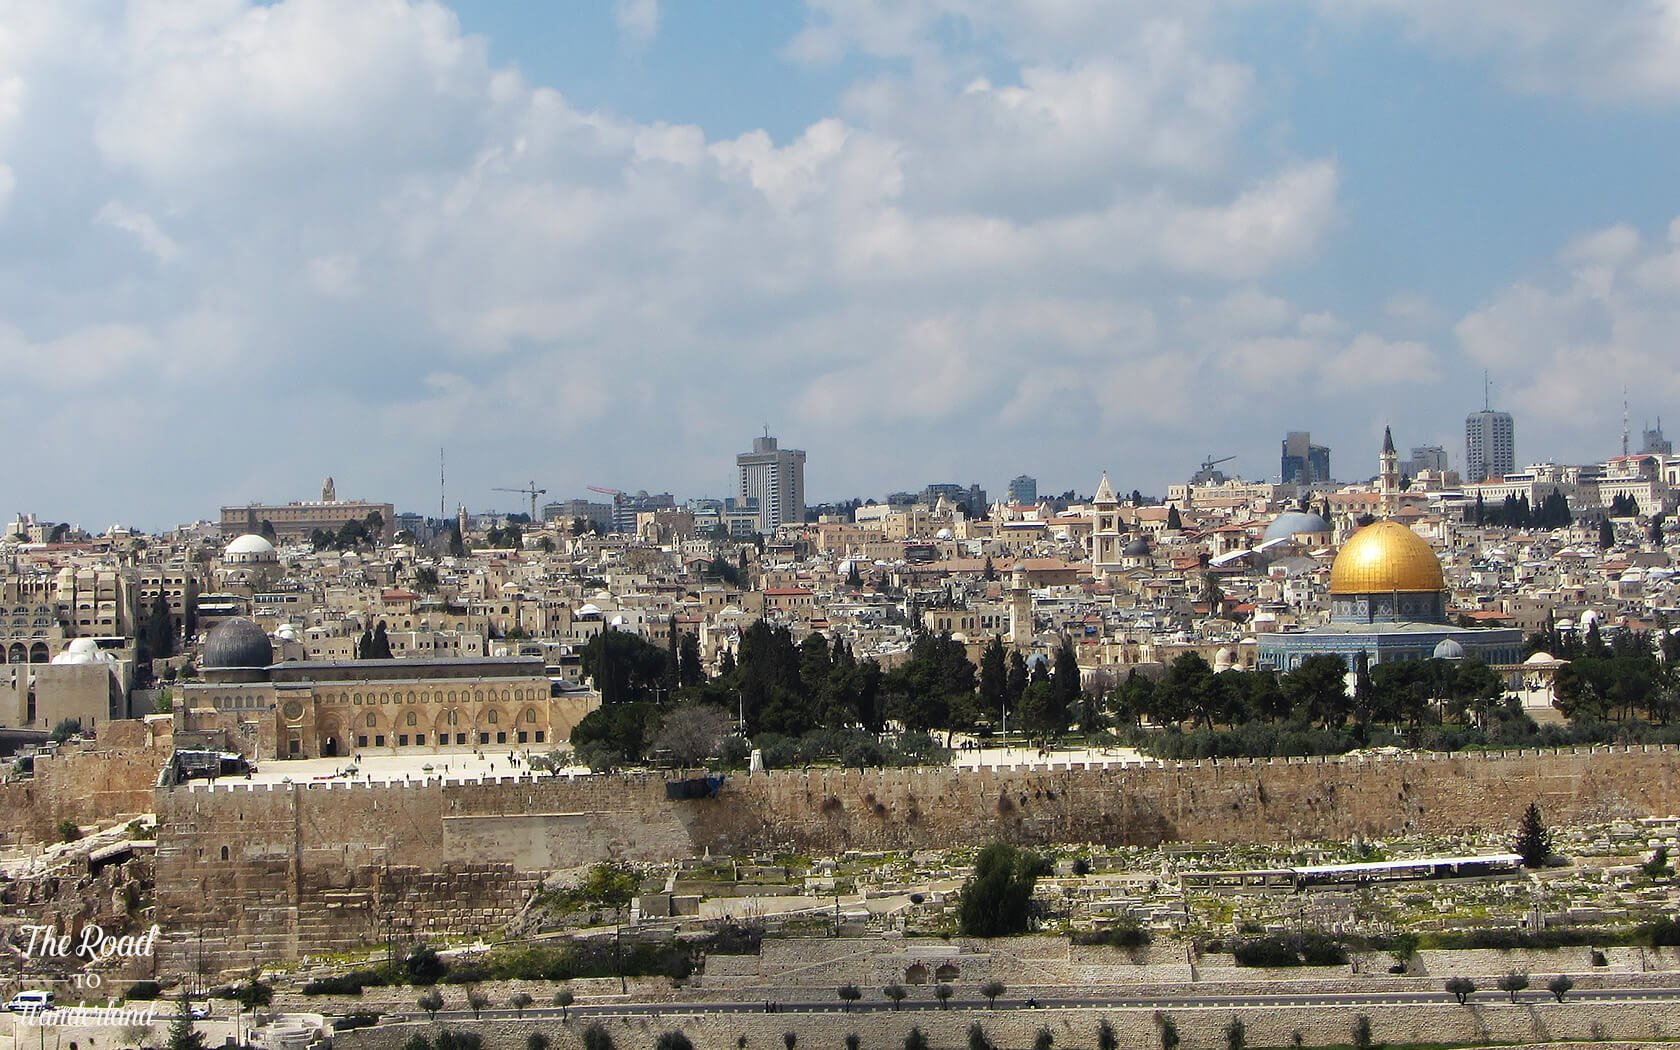 Dome of the Rock & Al-Aqsa Mosque